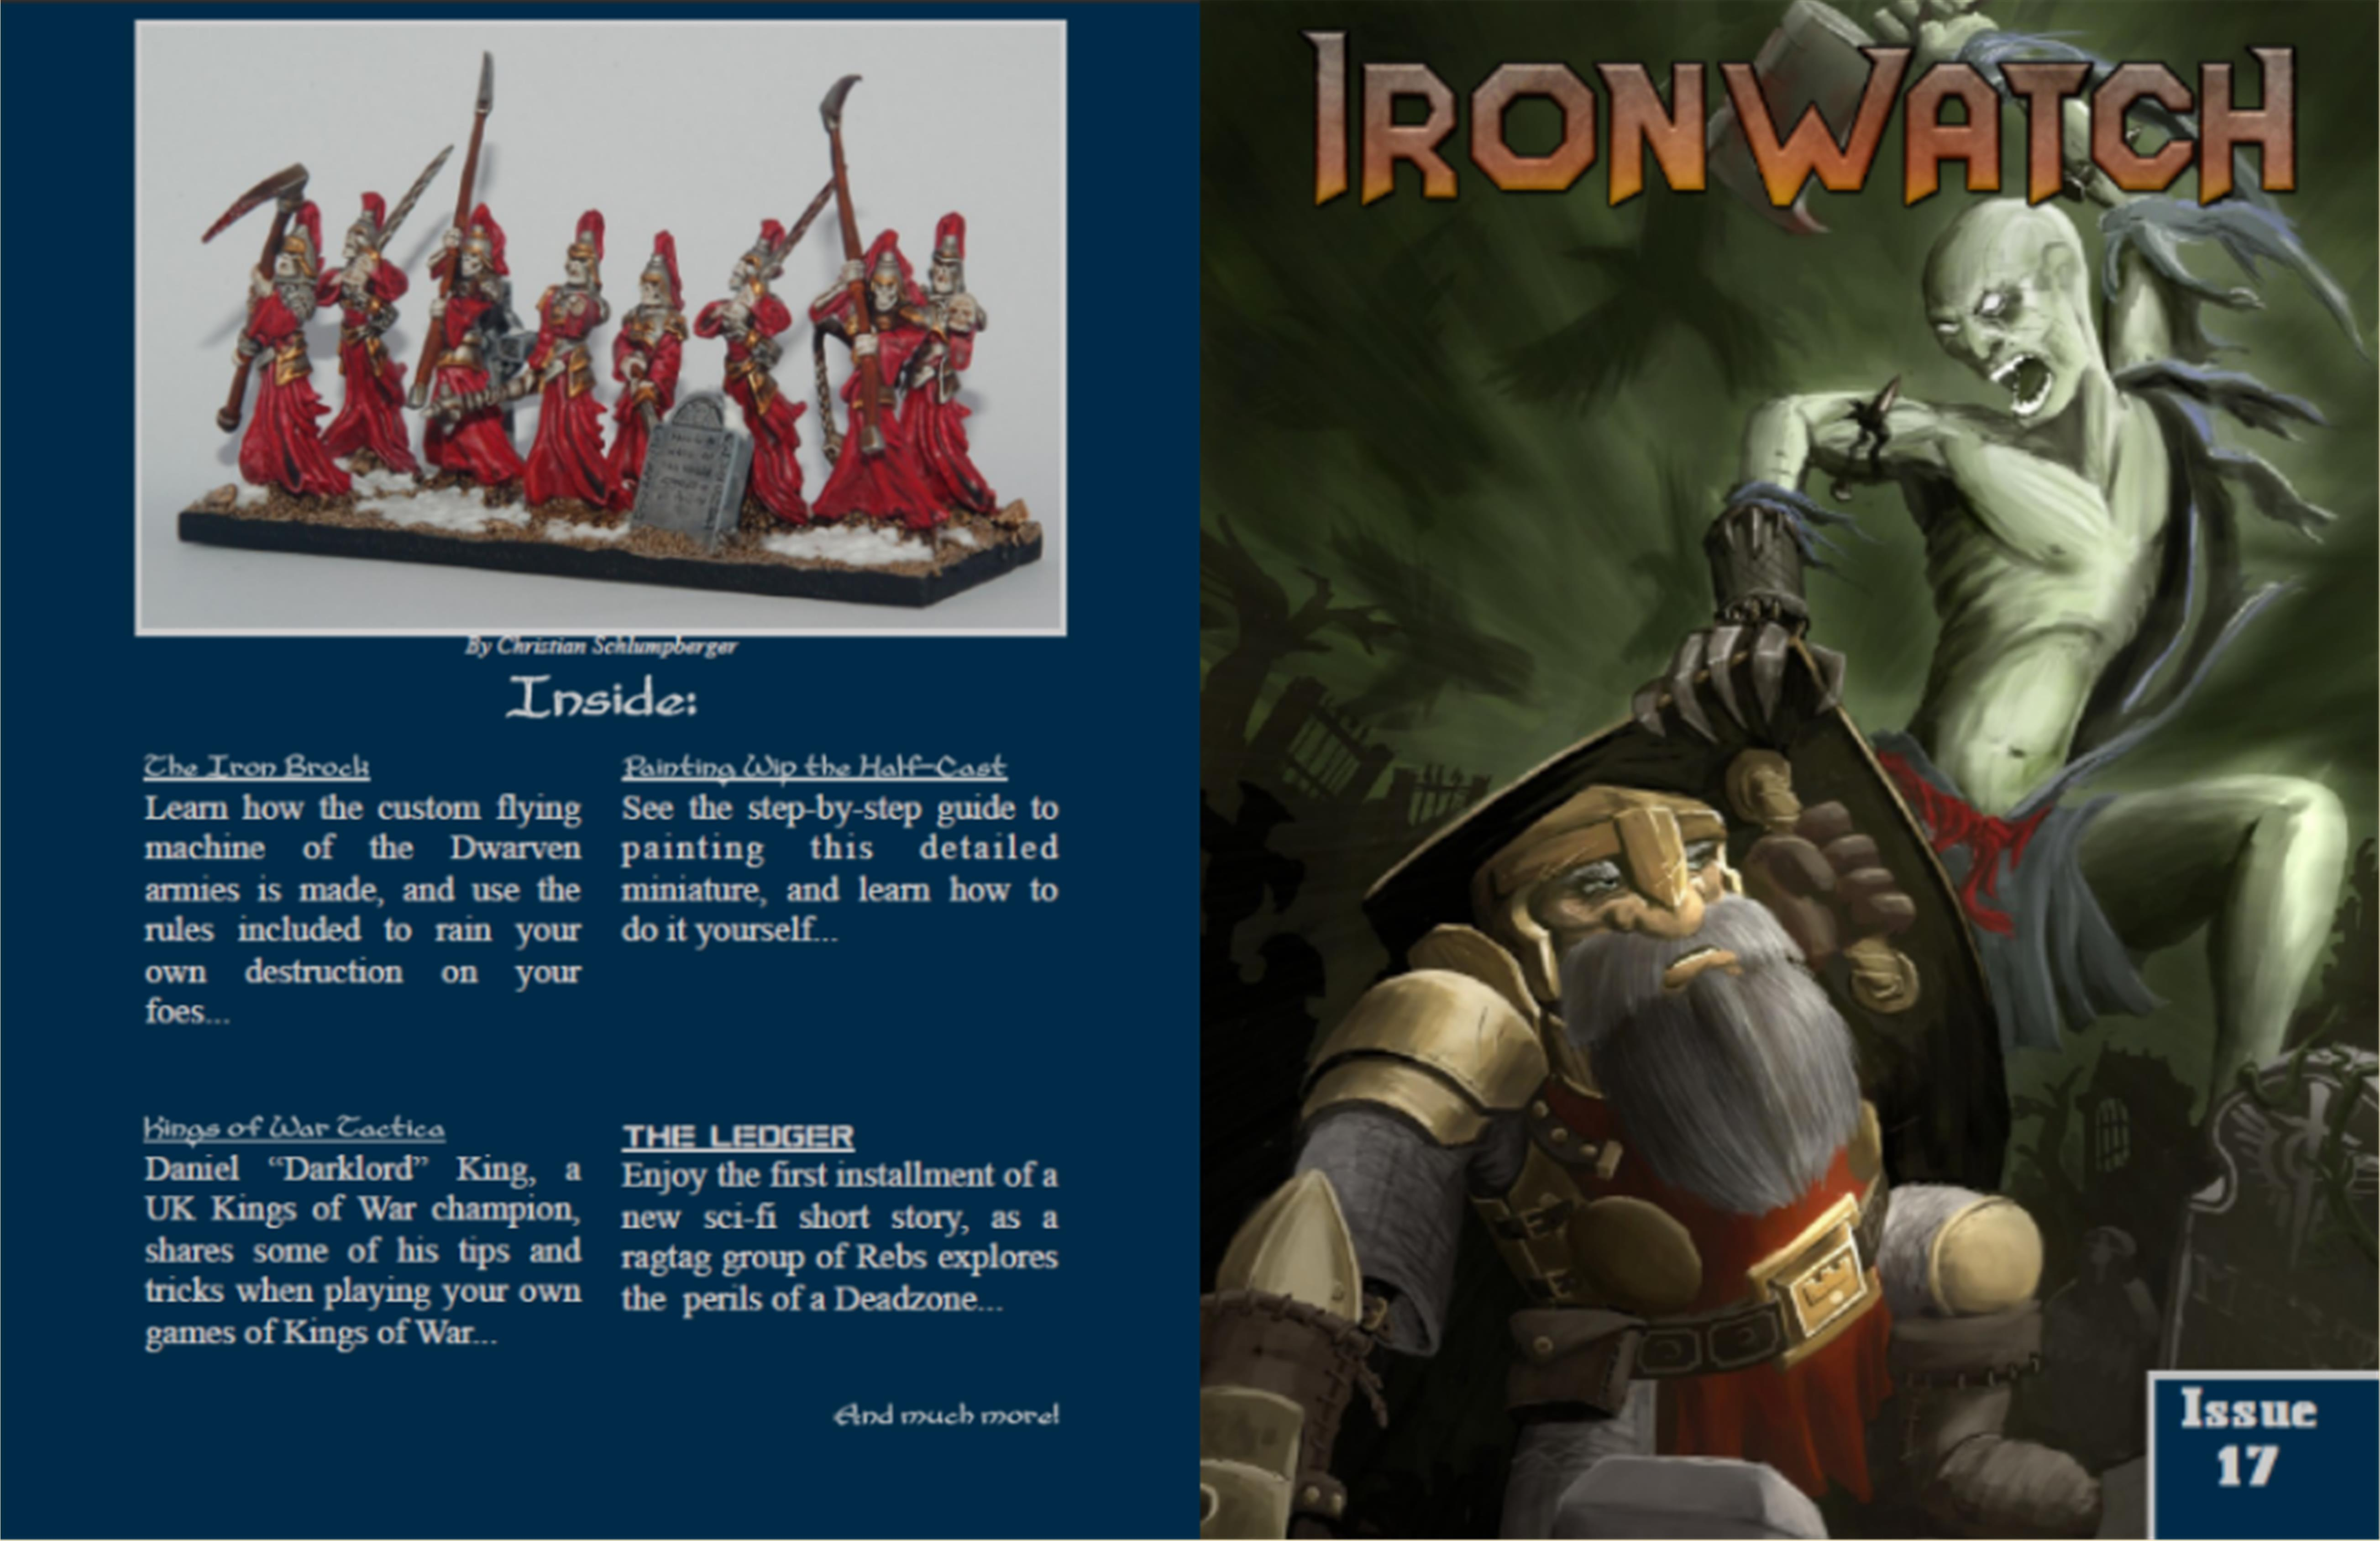 Ironwatch Issue 17 cover image